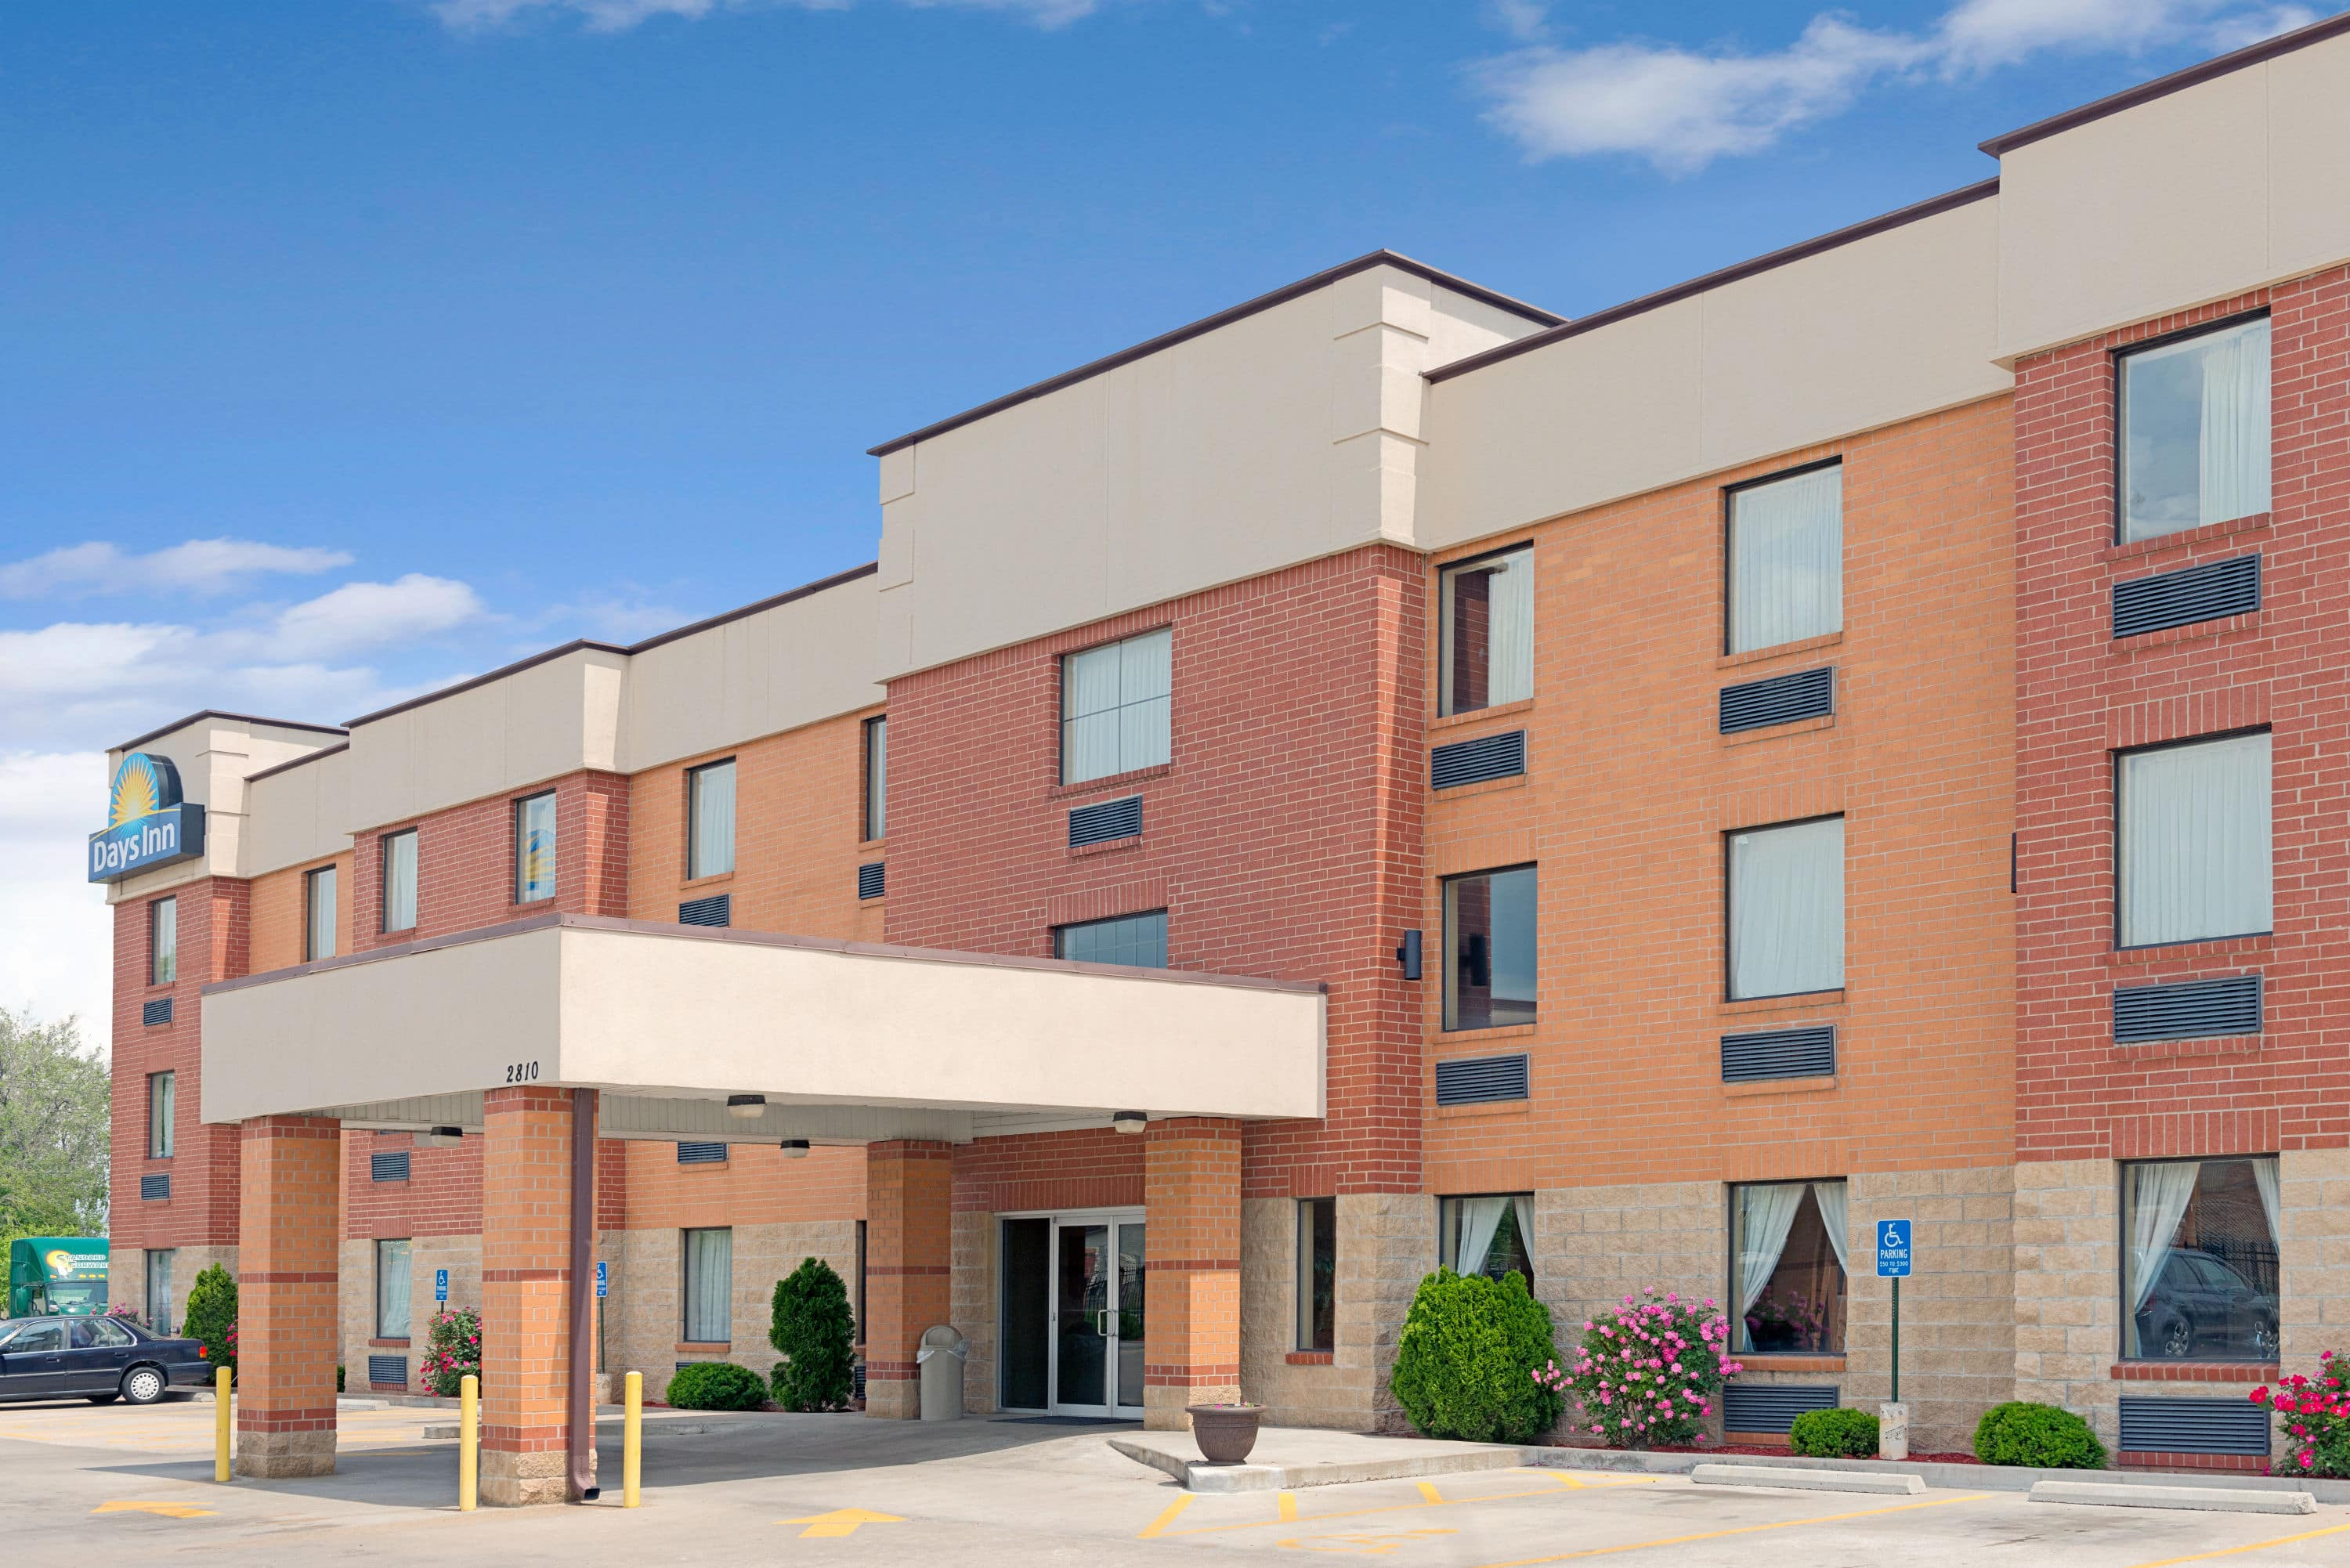 St Louis Hotels >> Days Inn By Wyndham Downtown St Louis Saint Louis Mo Hotels